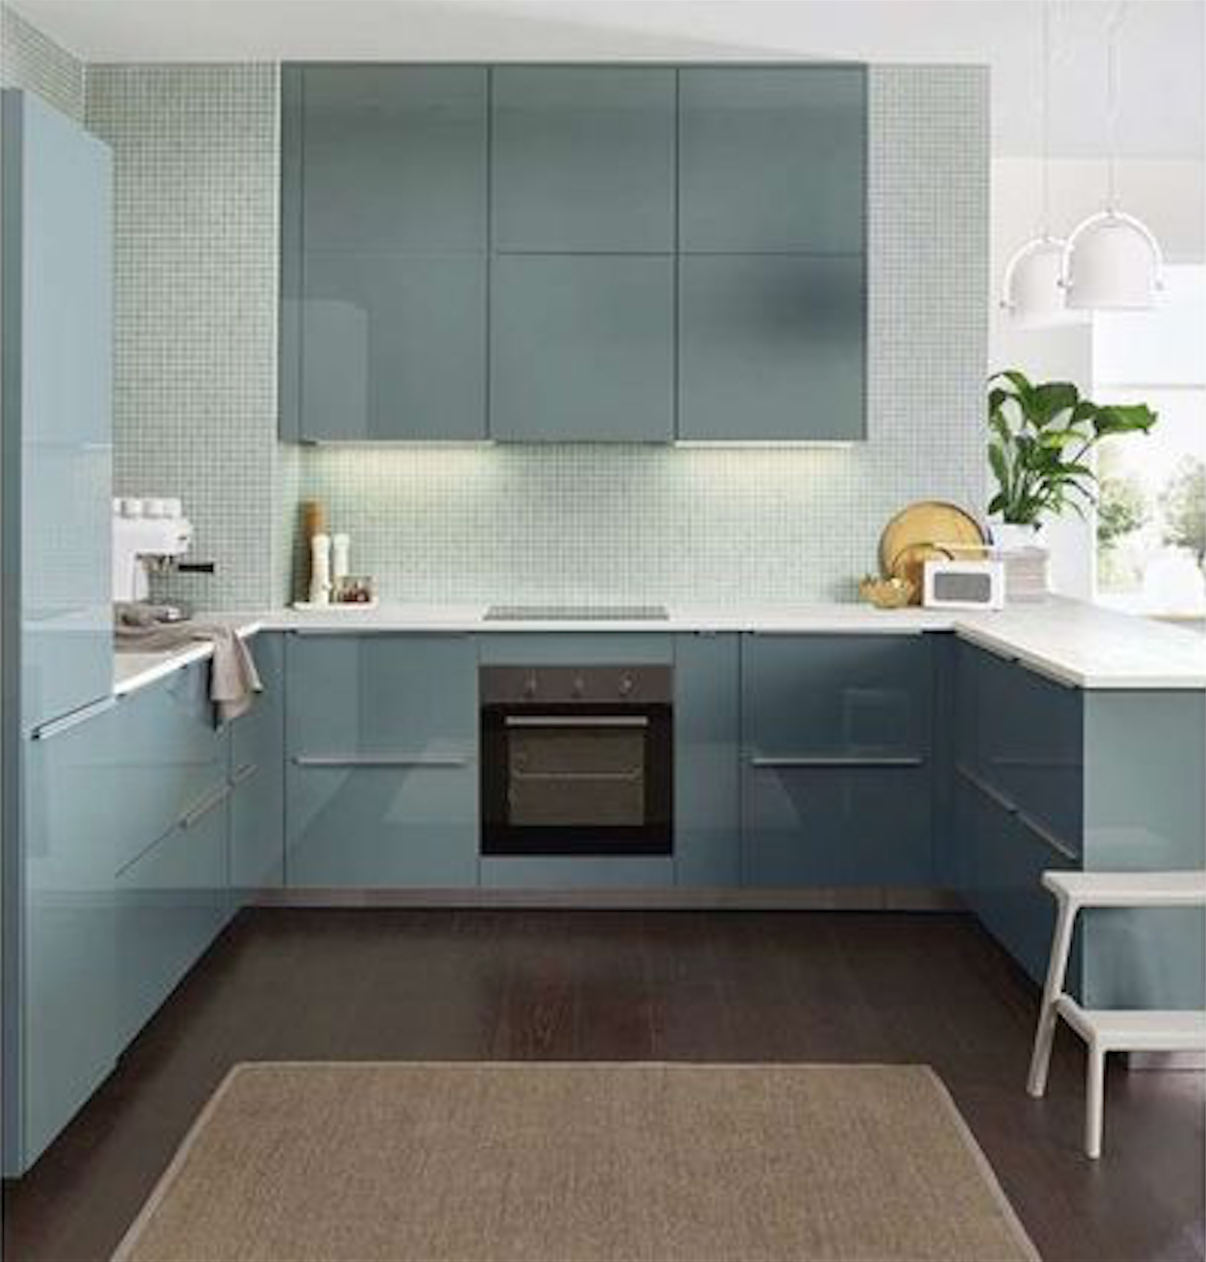 Design Kitchen Ikea Uk